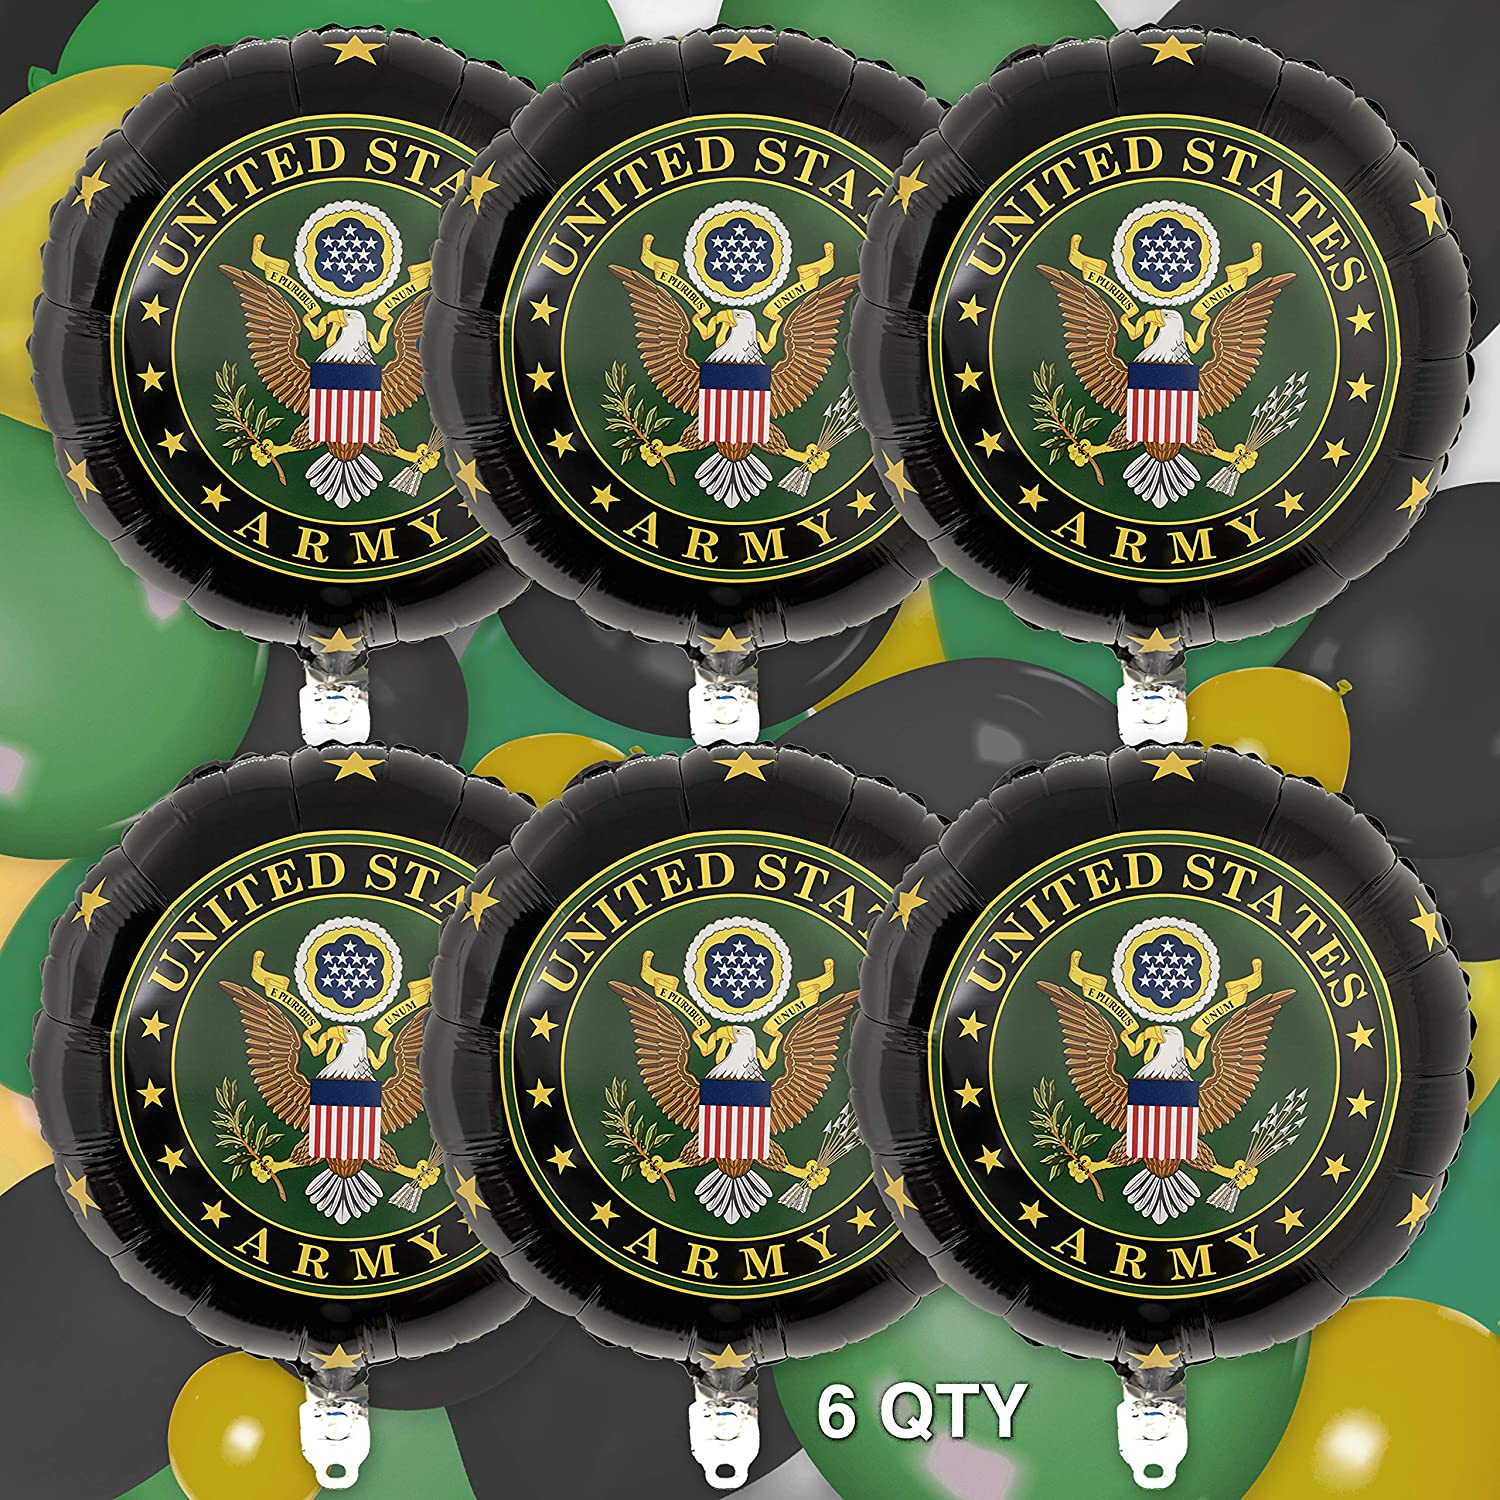 Military Party Army Birthday 6 Pack Air Force Party Veterans Day US Military Party Theme American Heroes Latex Balloons Army Party